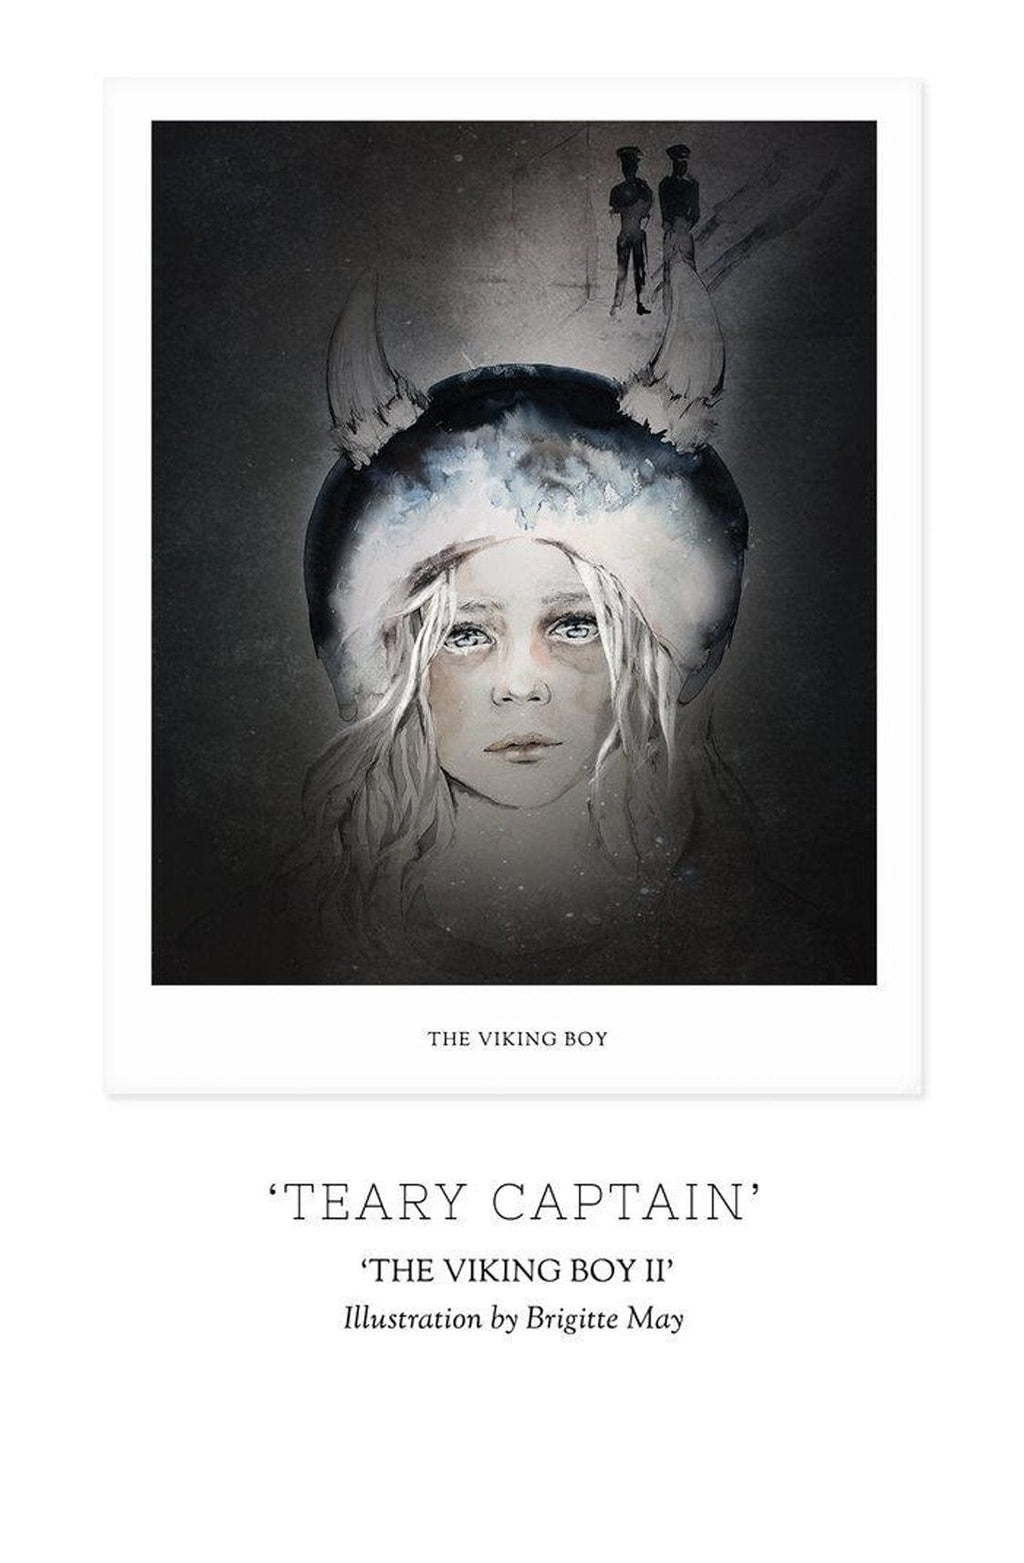 THE VIKING BOY, CHAPTER II - 'TEARY CAPTAIN' Print